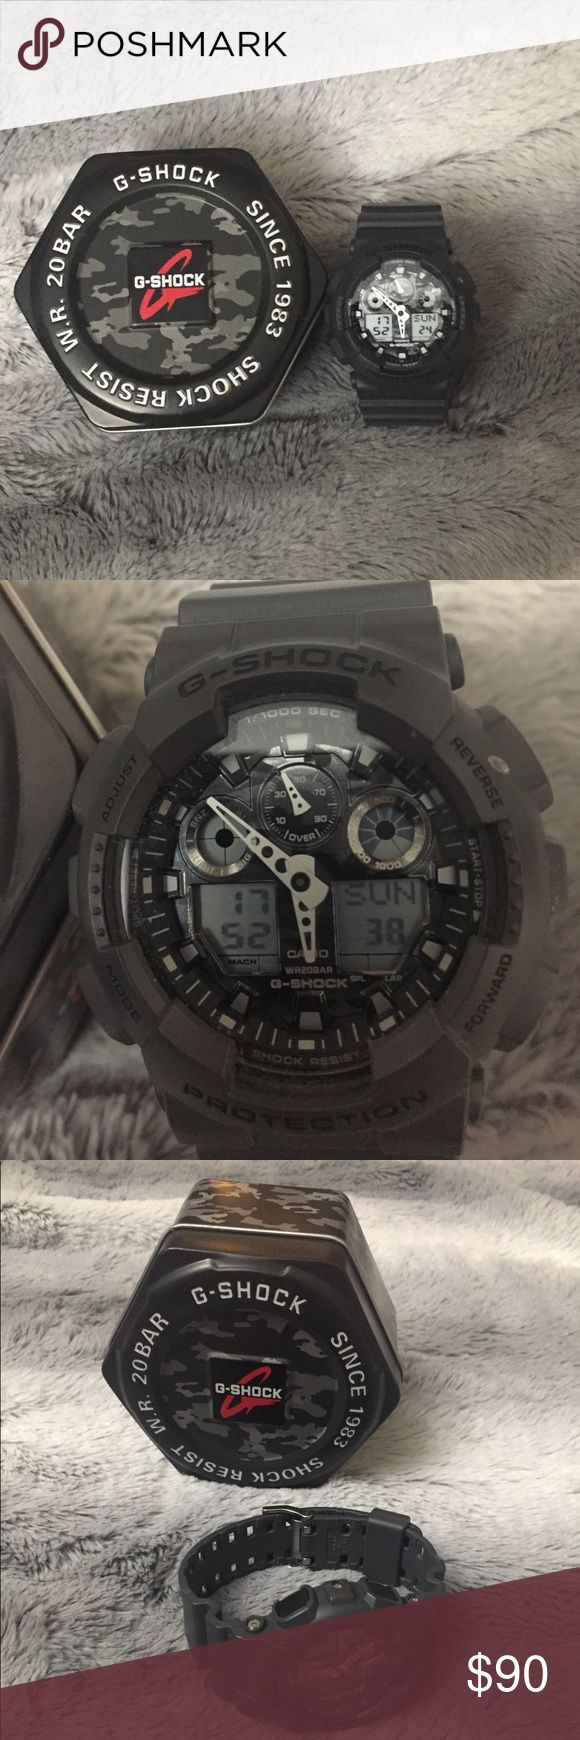 G-Shock Men's Watch - never worn Black G Shock never worn! Great condition G-Shock Accessories Watches